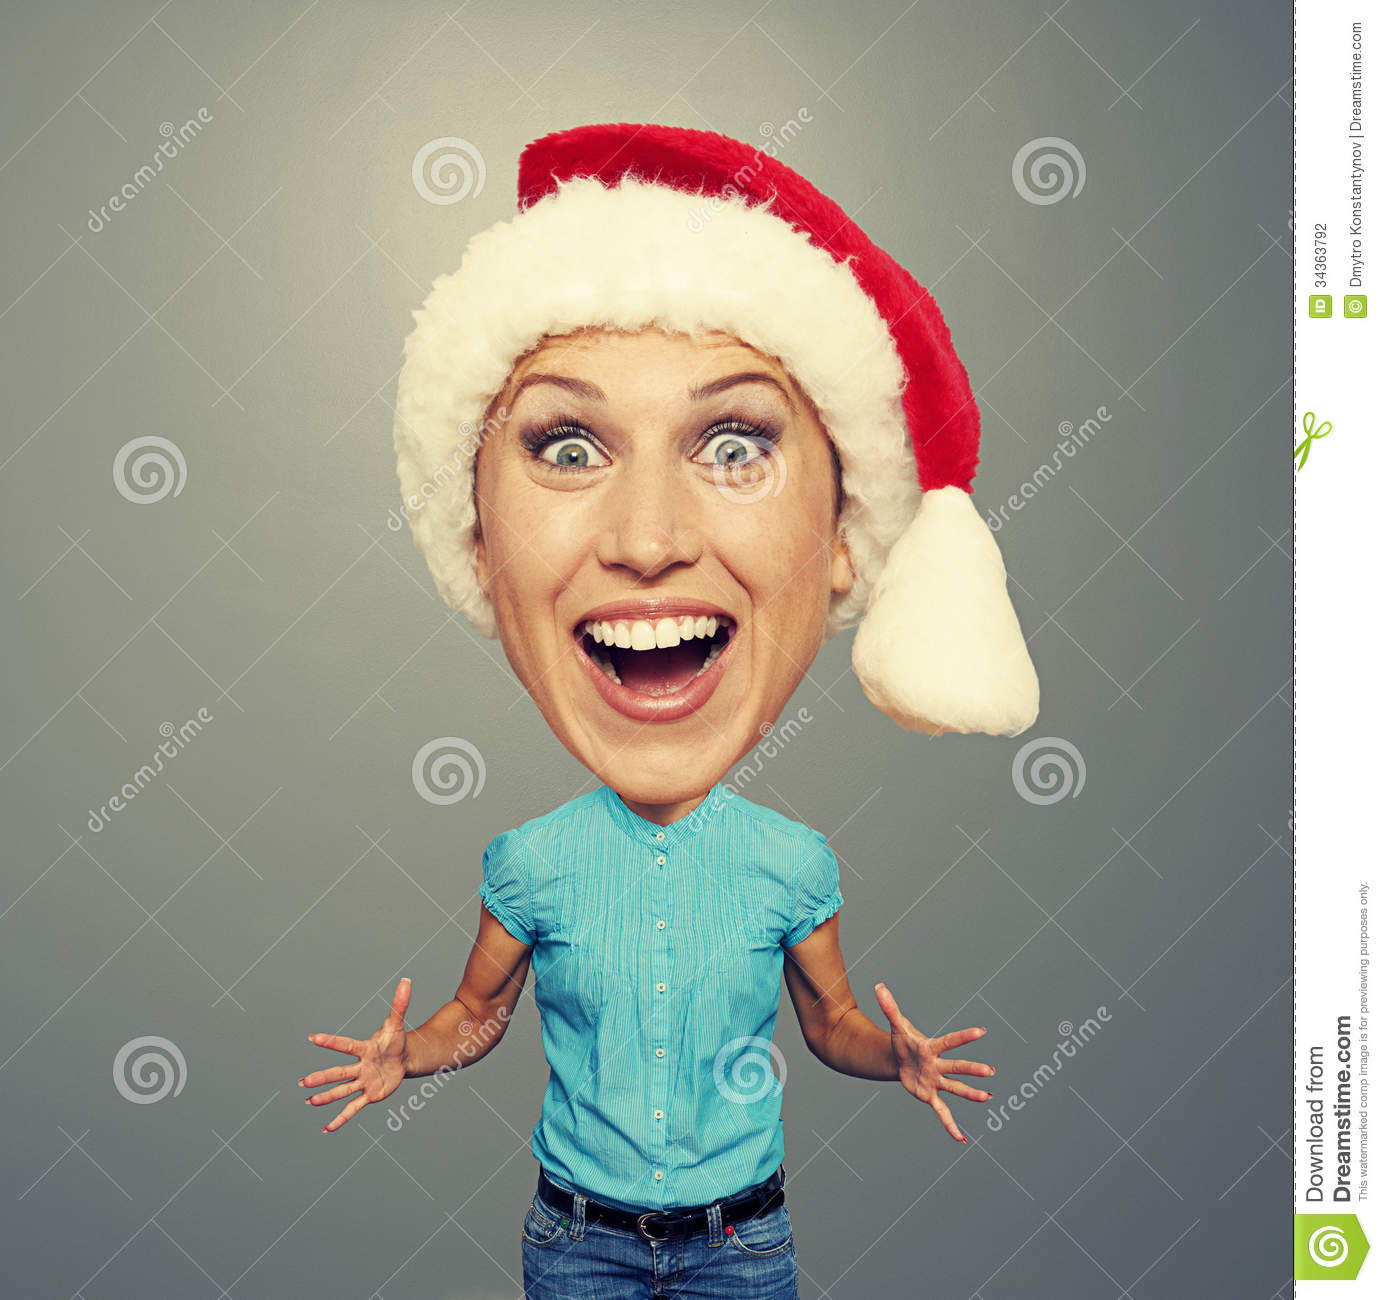 Excited And Funny Girl In Red Hat Stock Photo - Image ...